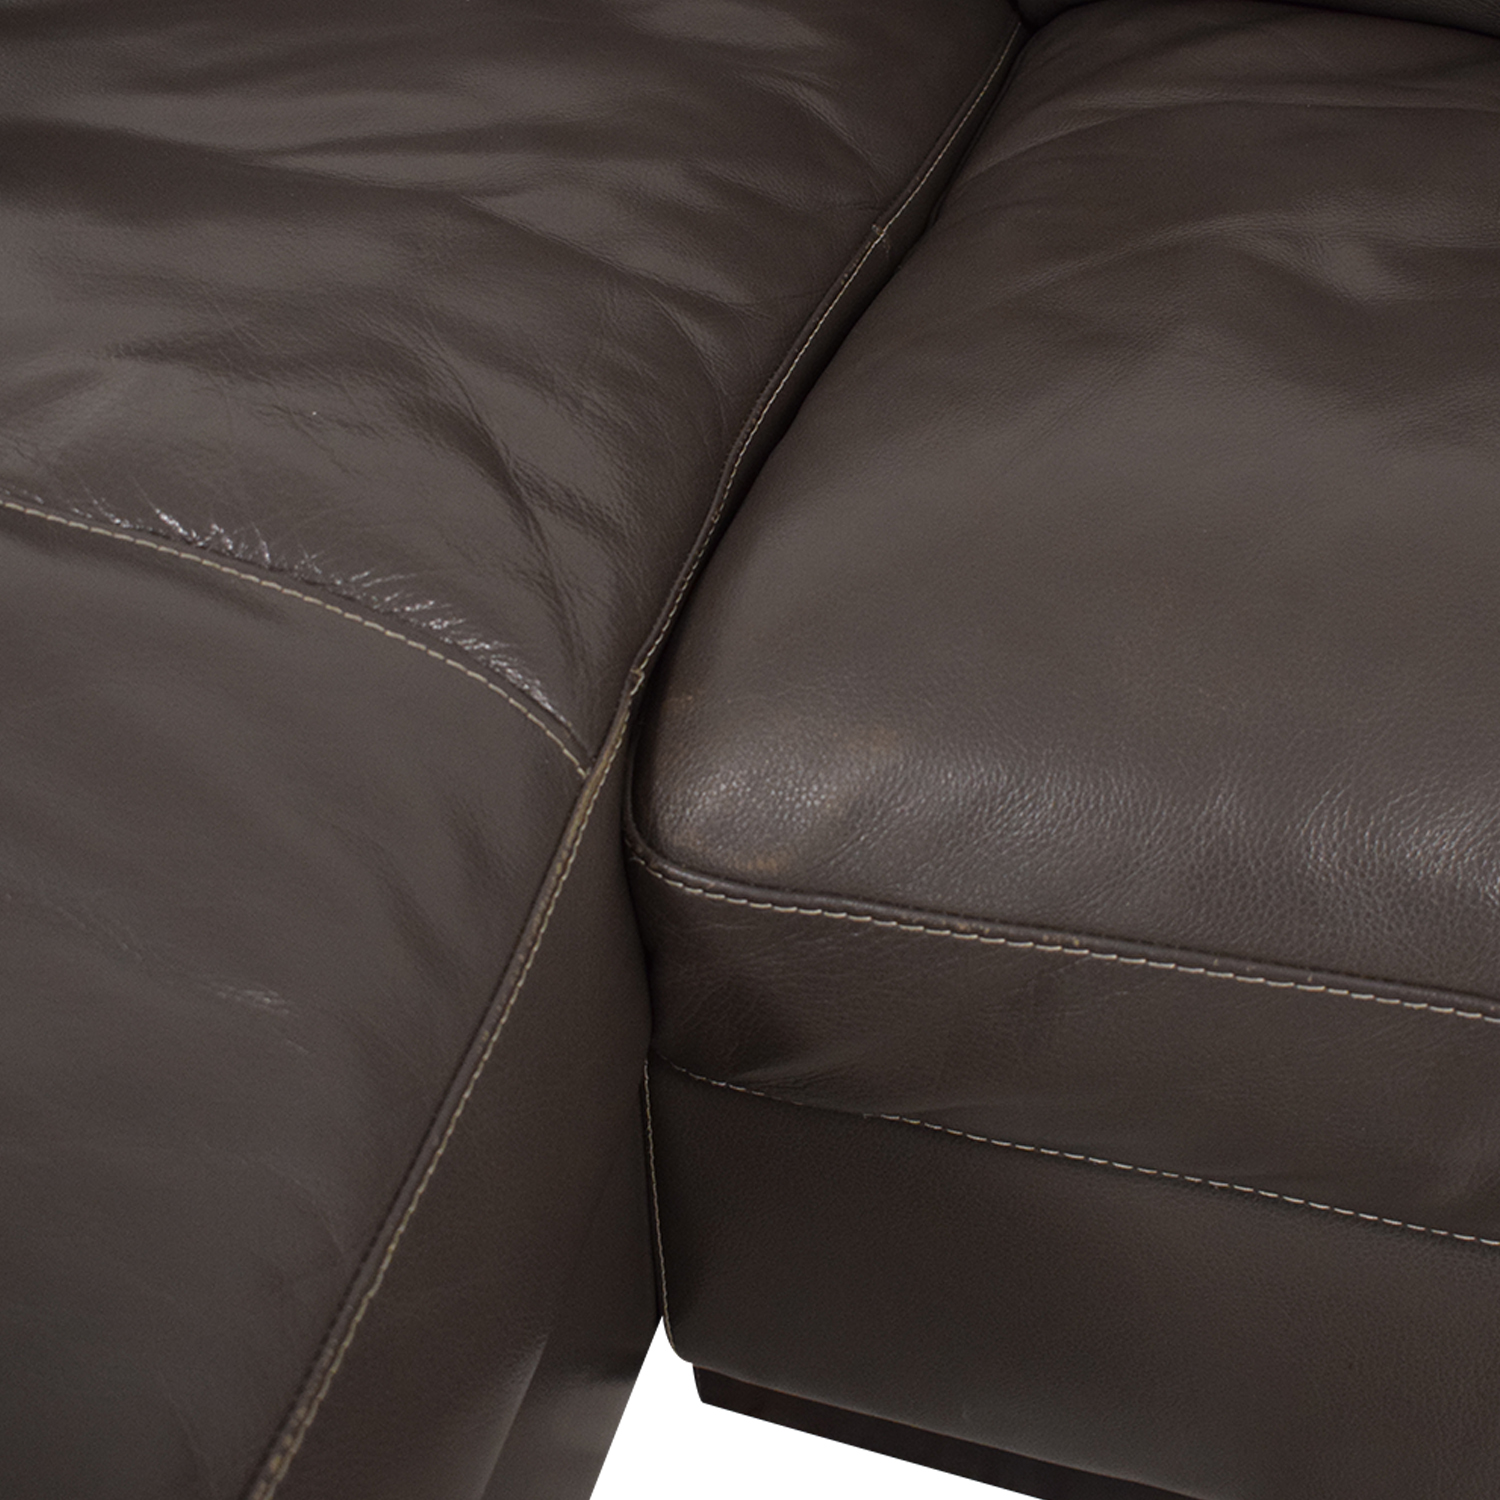 Raymour & Flanigan Raymour & Flanigan Leather Sectional Sofa discount